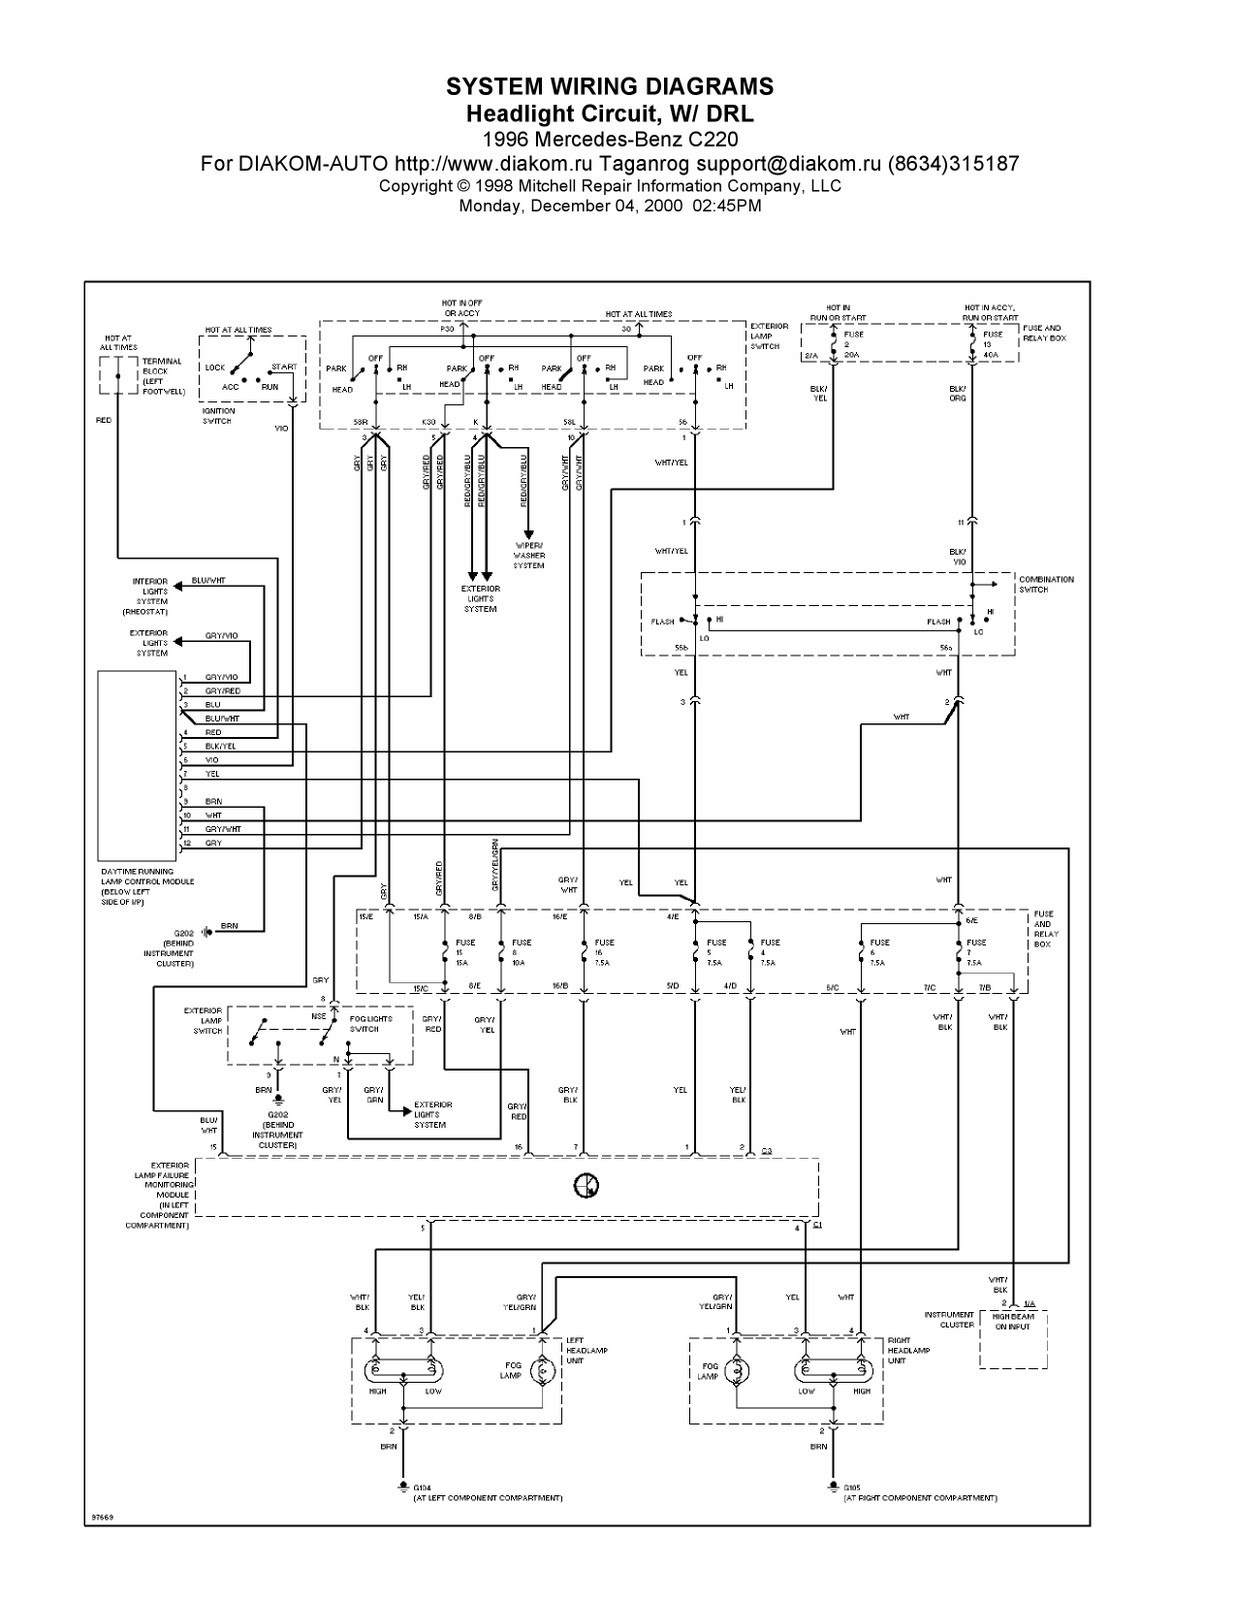 Free Wiring Diagrams Mercedes Great Installation Of Diagram Weebly Benz Schematic Rh 5 Koch Foerderbandtrommeln De 2000